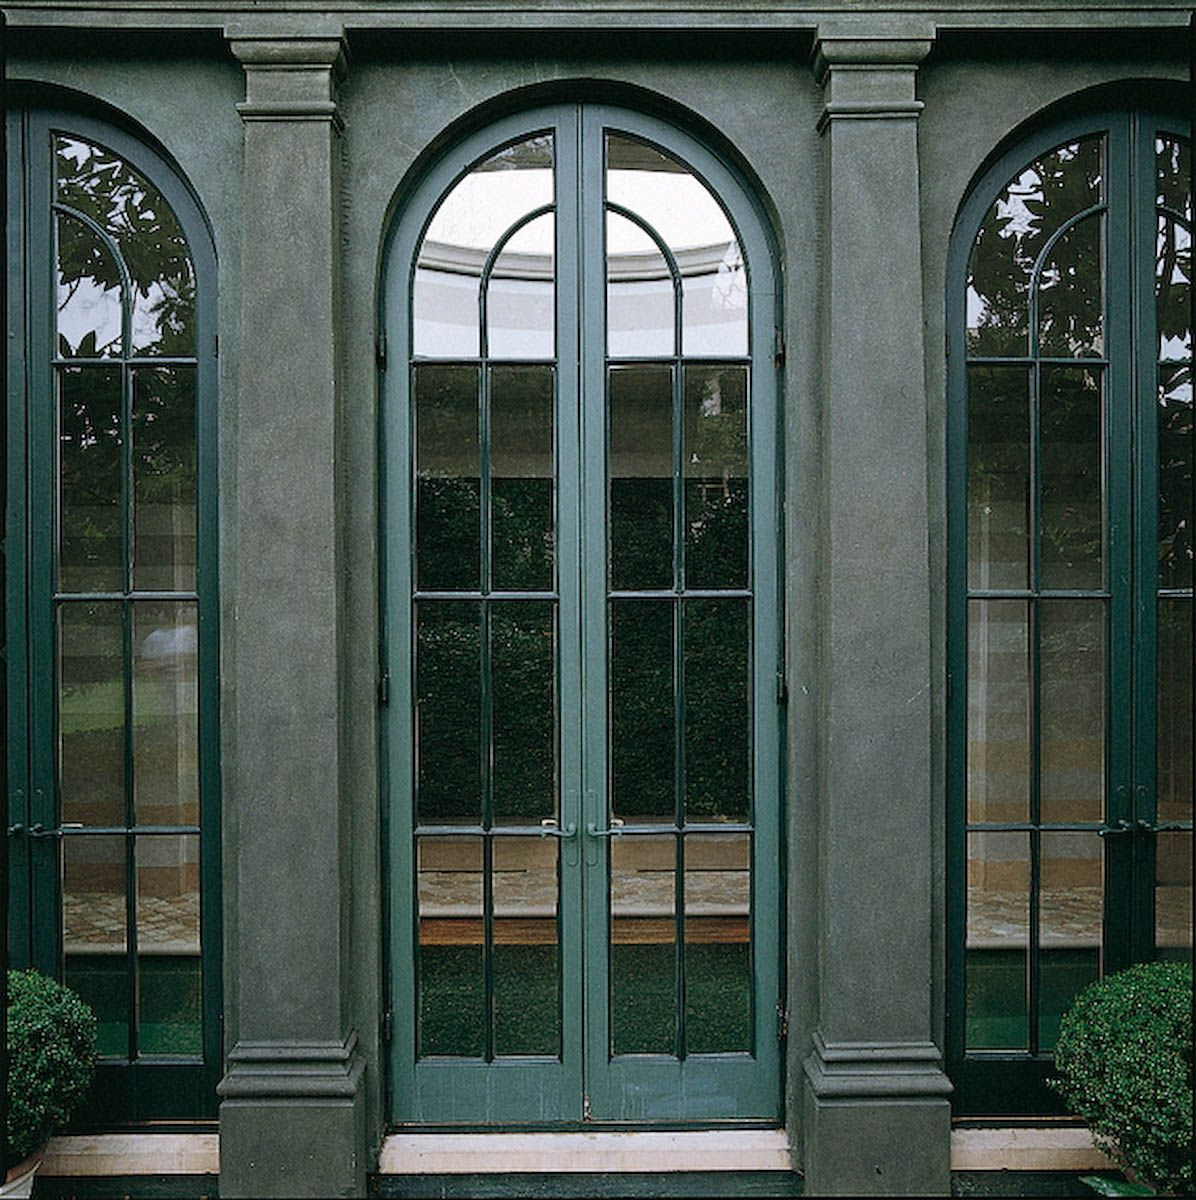 Anouska Hempel Design Architects Interior Design Landscapes Product Design And Furniture Arched Doors Front Doors With Windows Windows And Doors